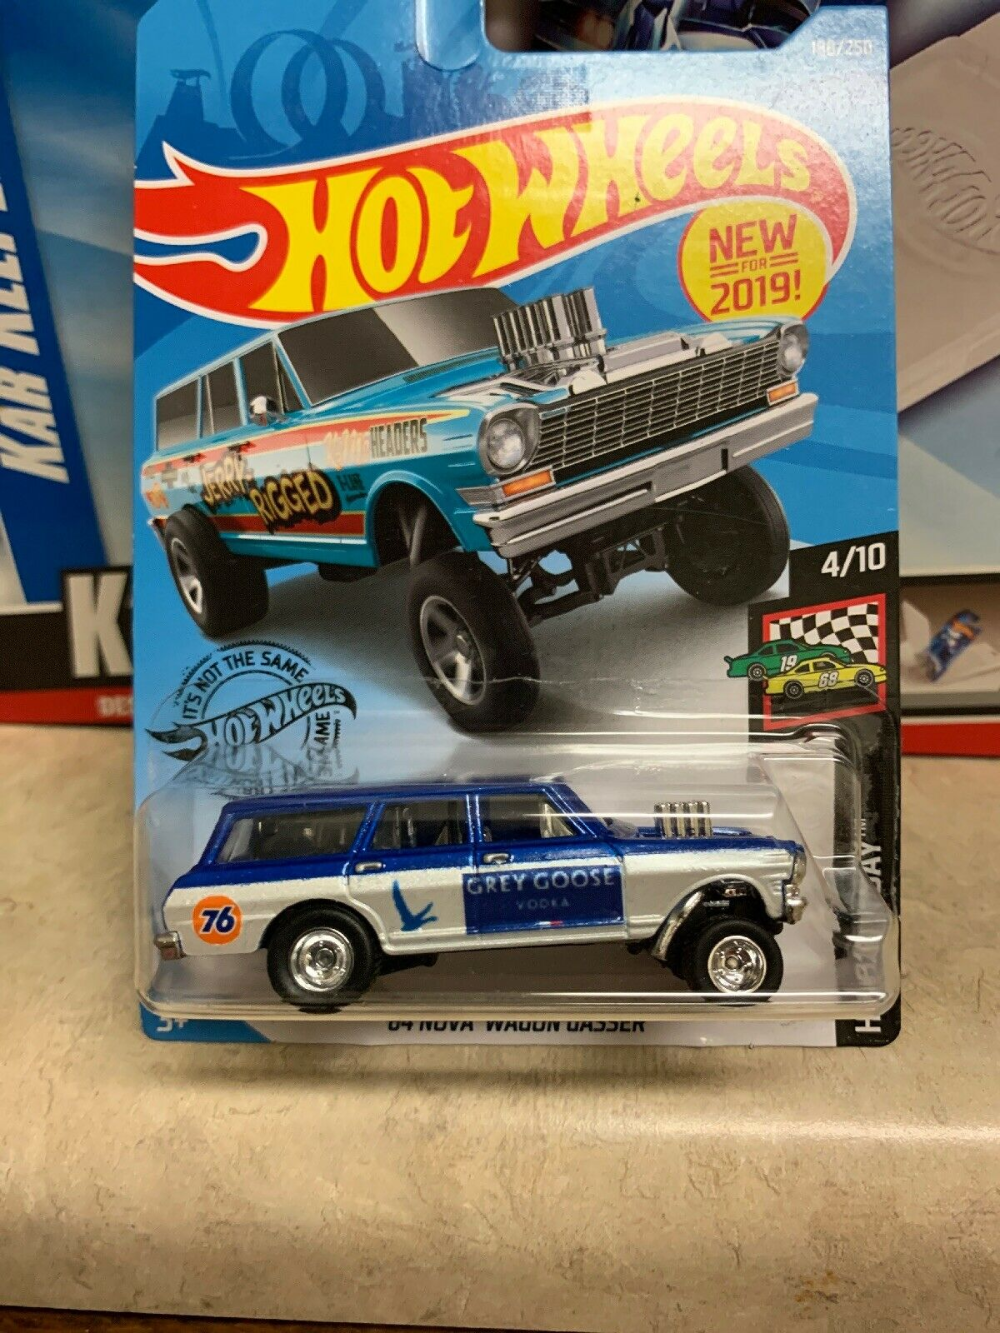 2019 Hot Wheels 64 Nova Wagon Gasser Custom Grey Goose Racing Real